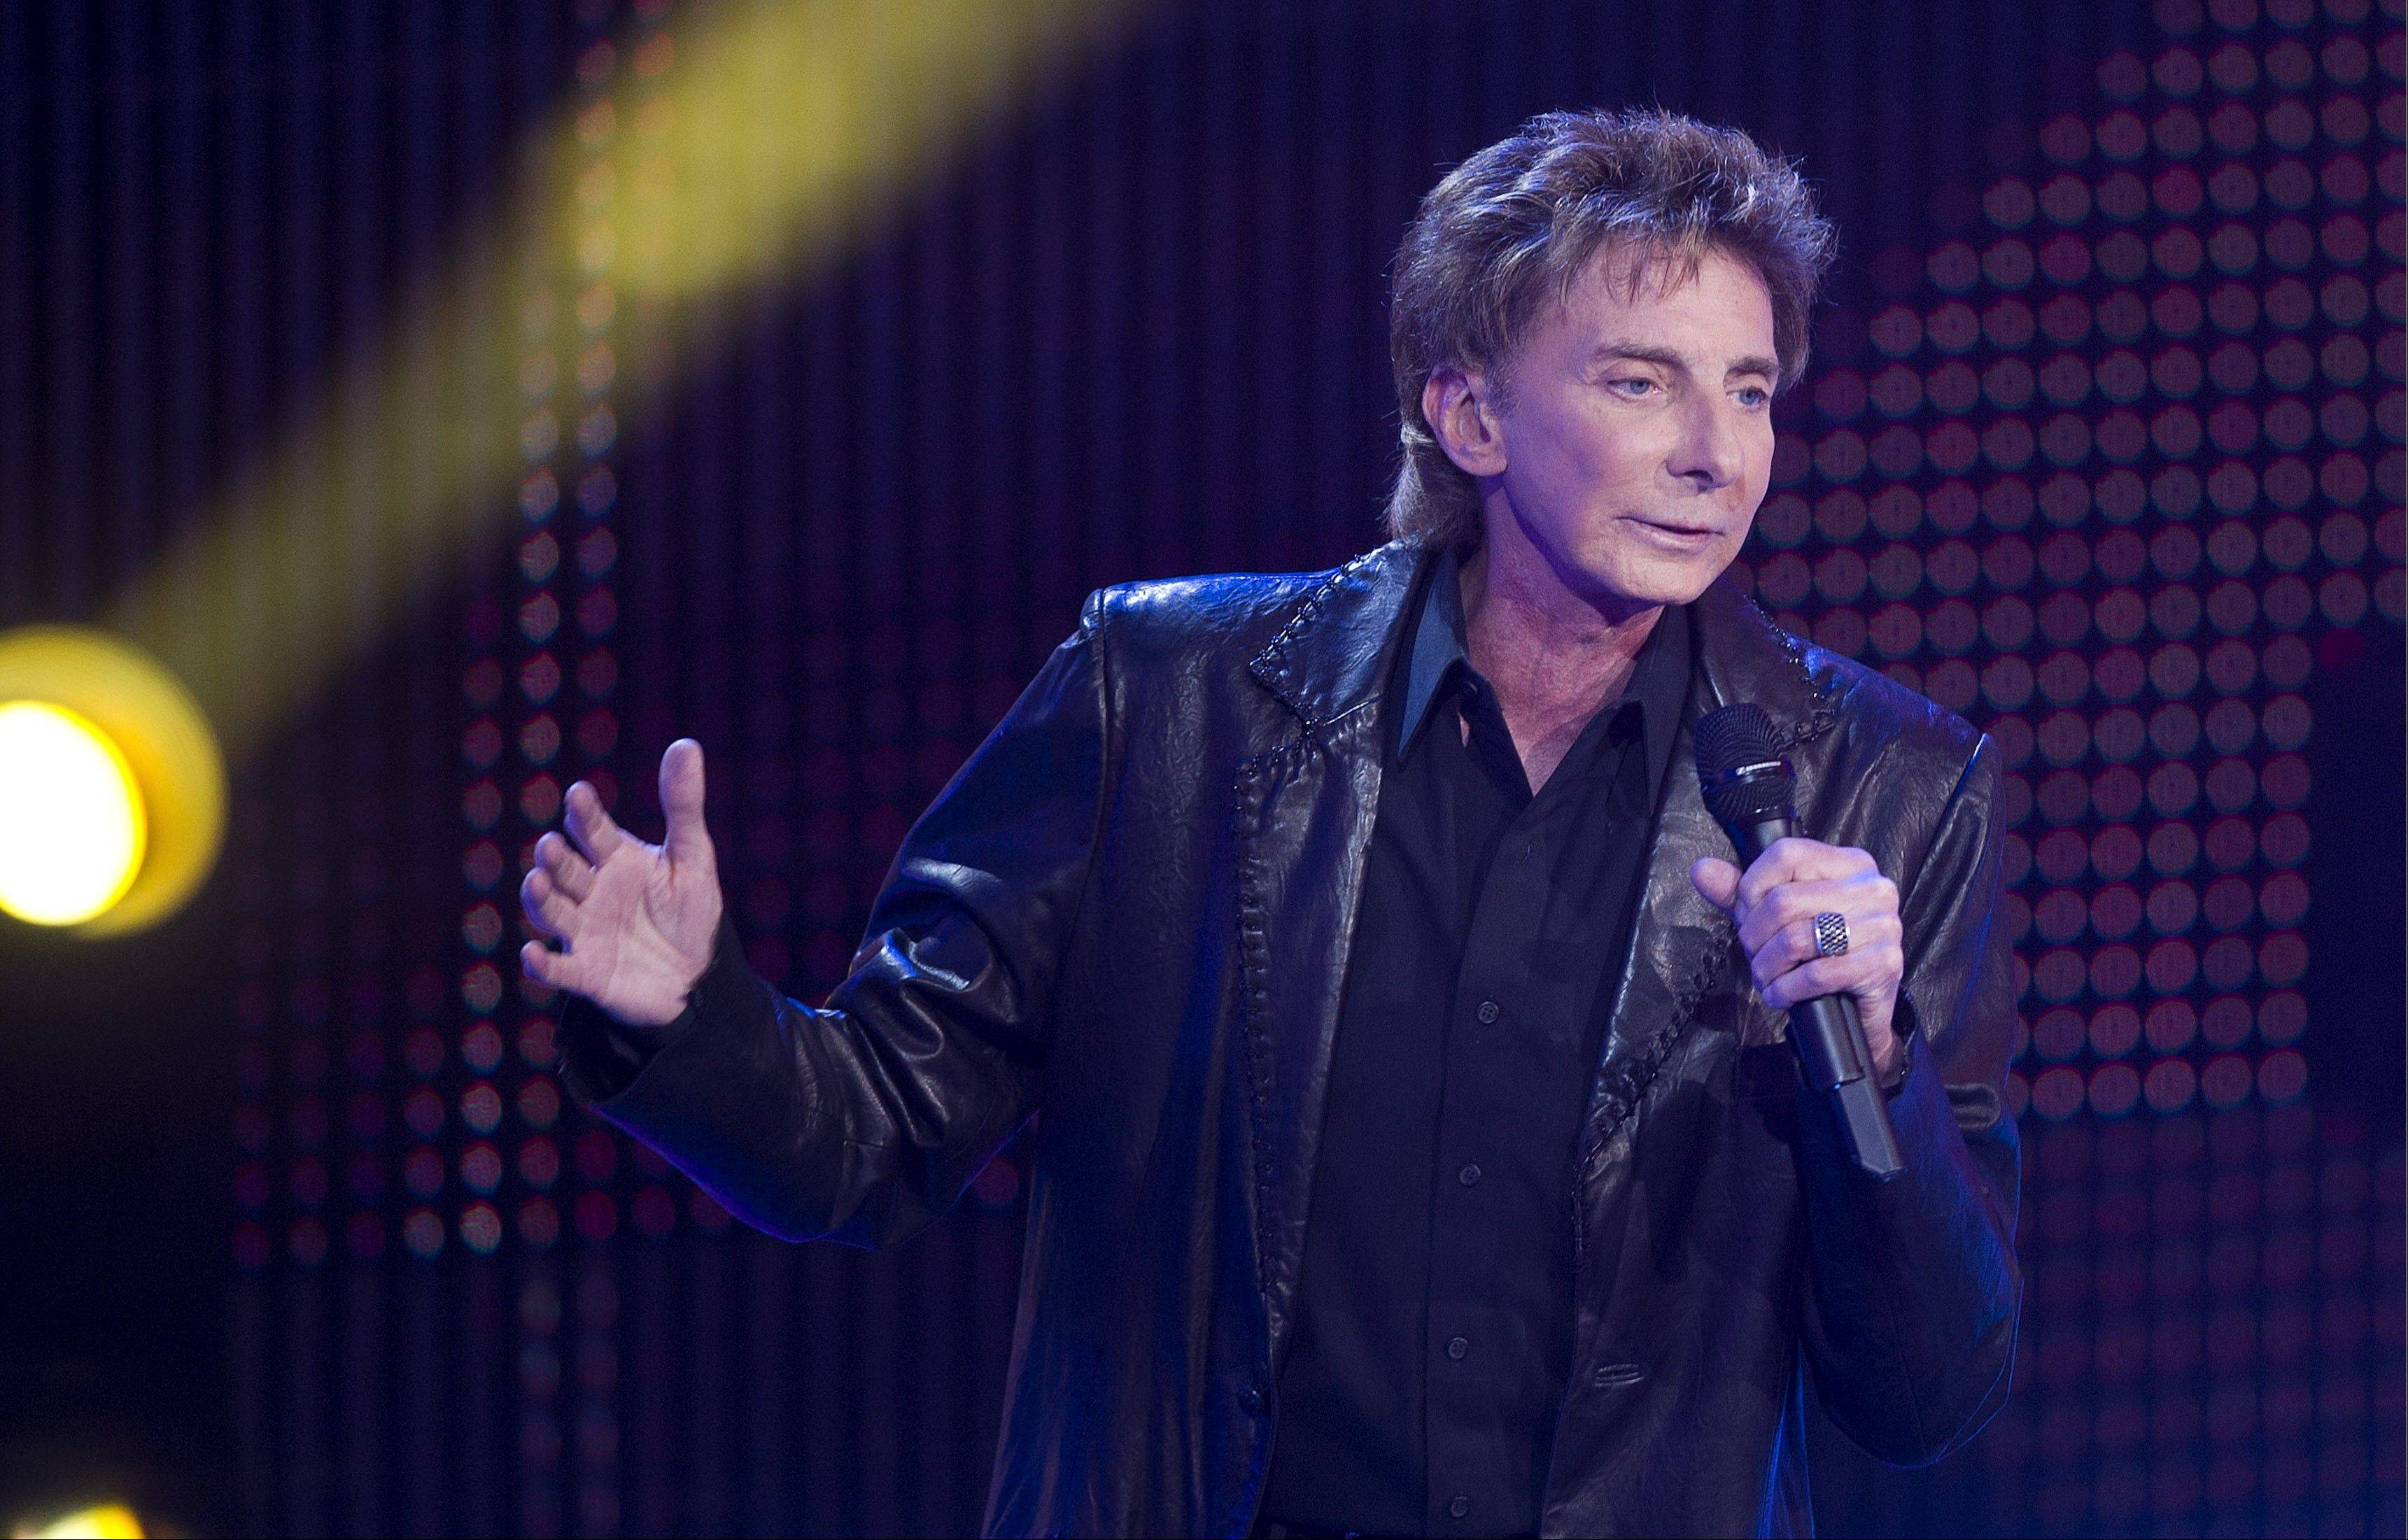 Barry Manilow headlines the Chicago Theatre for three shows starting Thursday, July 12.